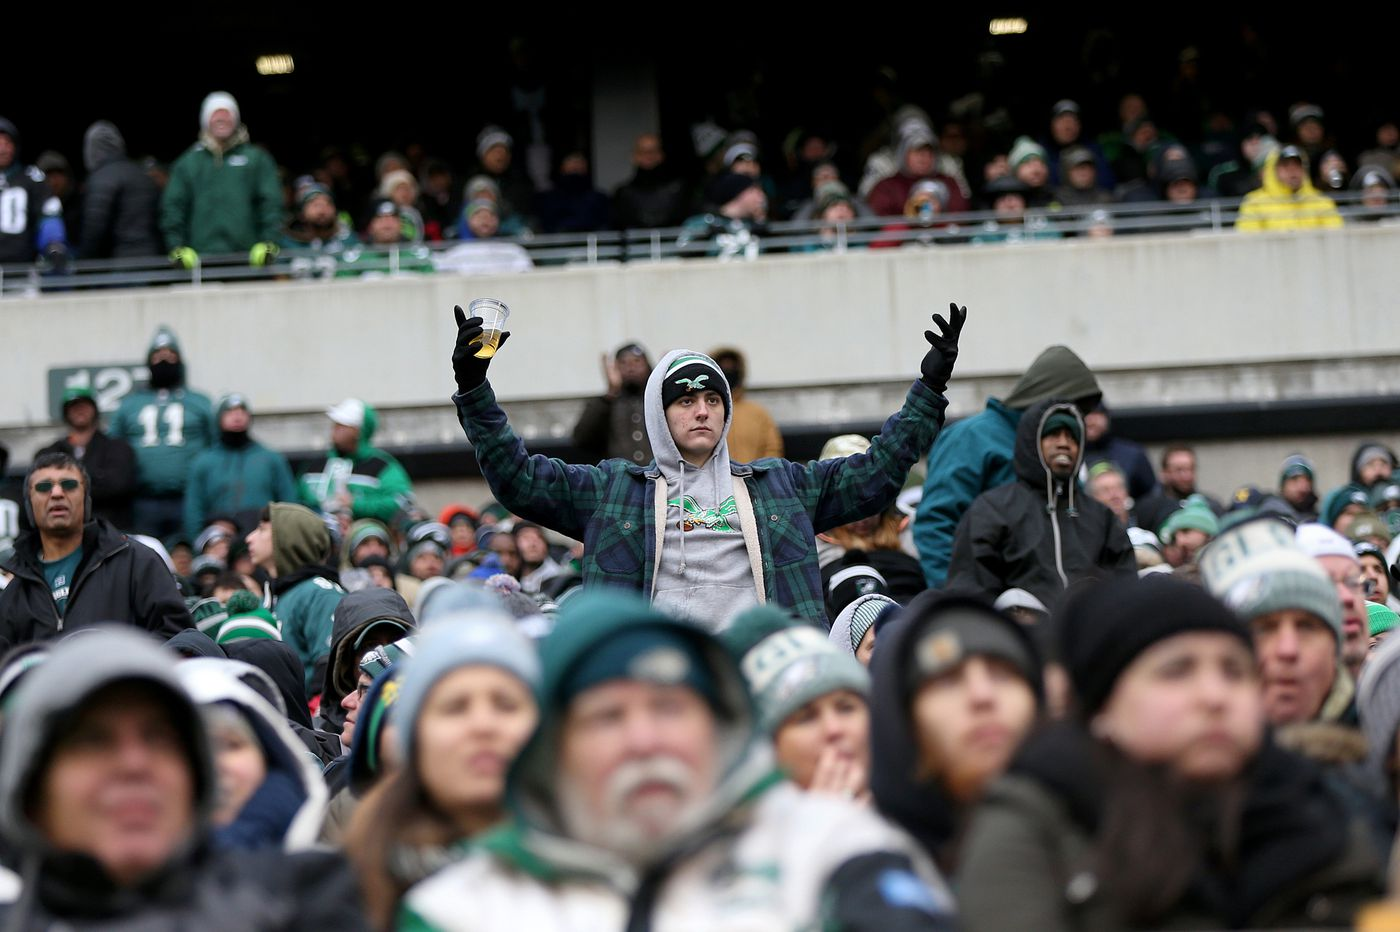 Eagles fans in a fiery mood on social media after loss to Seahawks